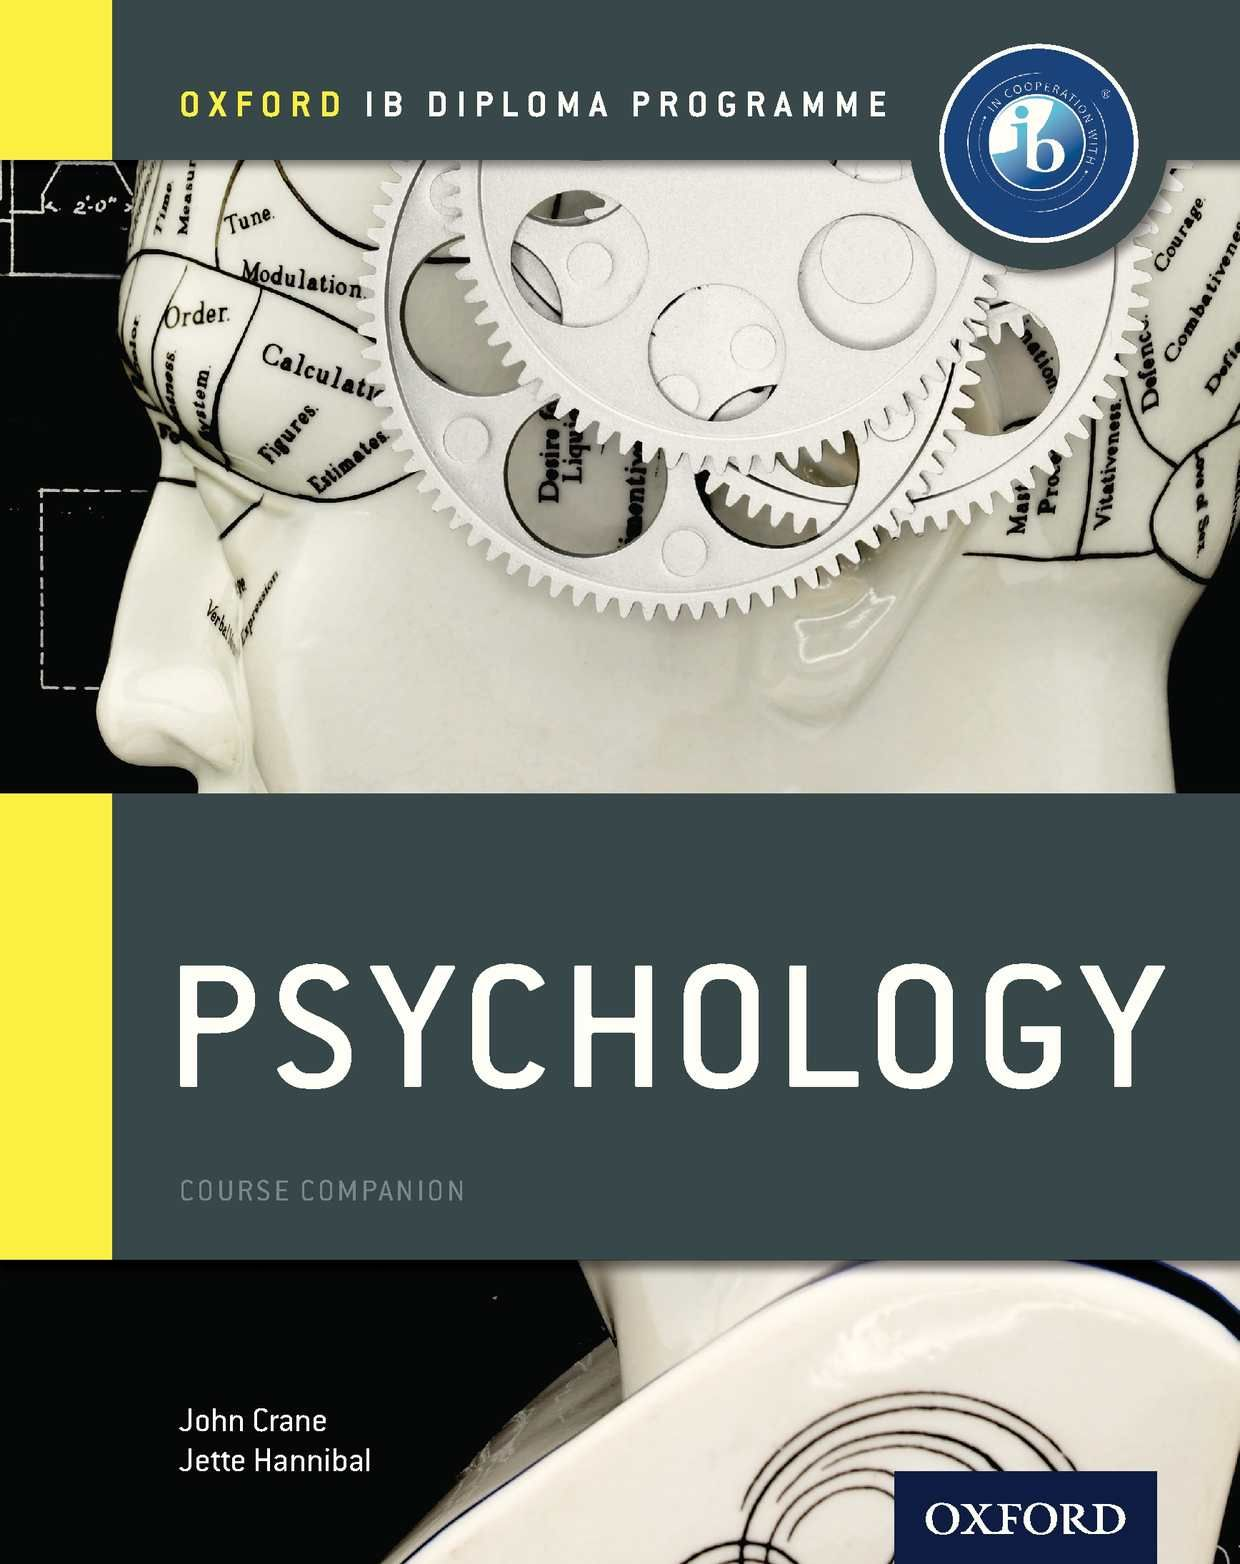 Download as pdf oxford ib diploma psychology course book book download as pdf oxford ib diploma psychology course book fandeluxe Images